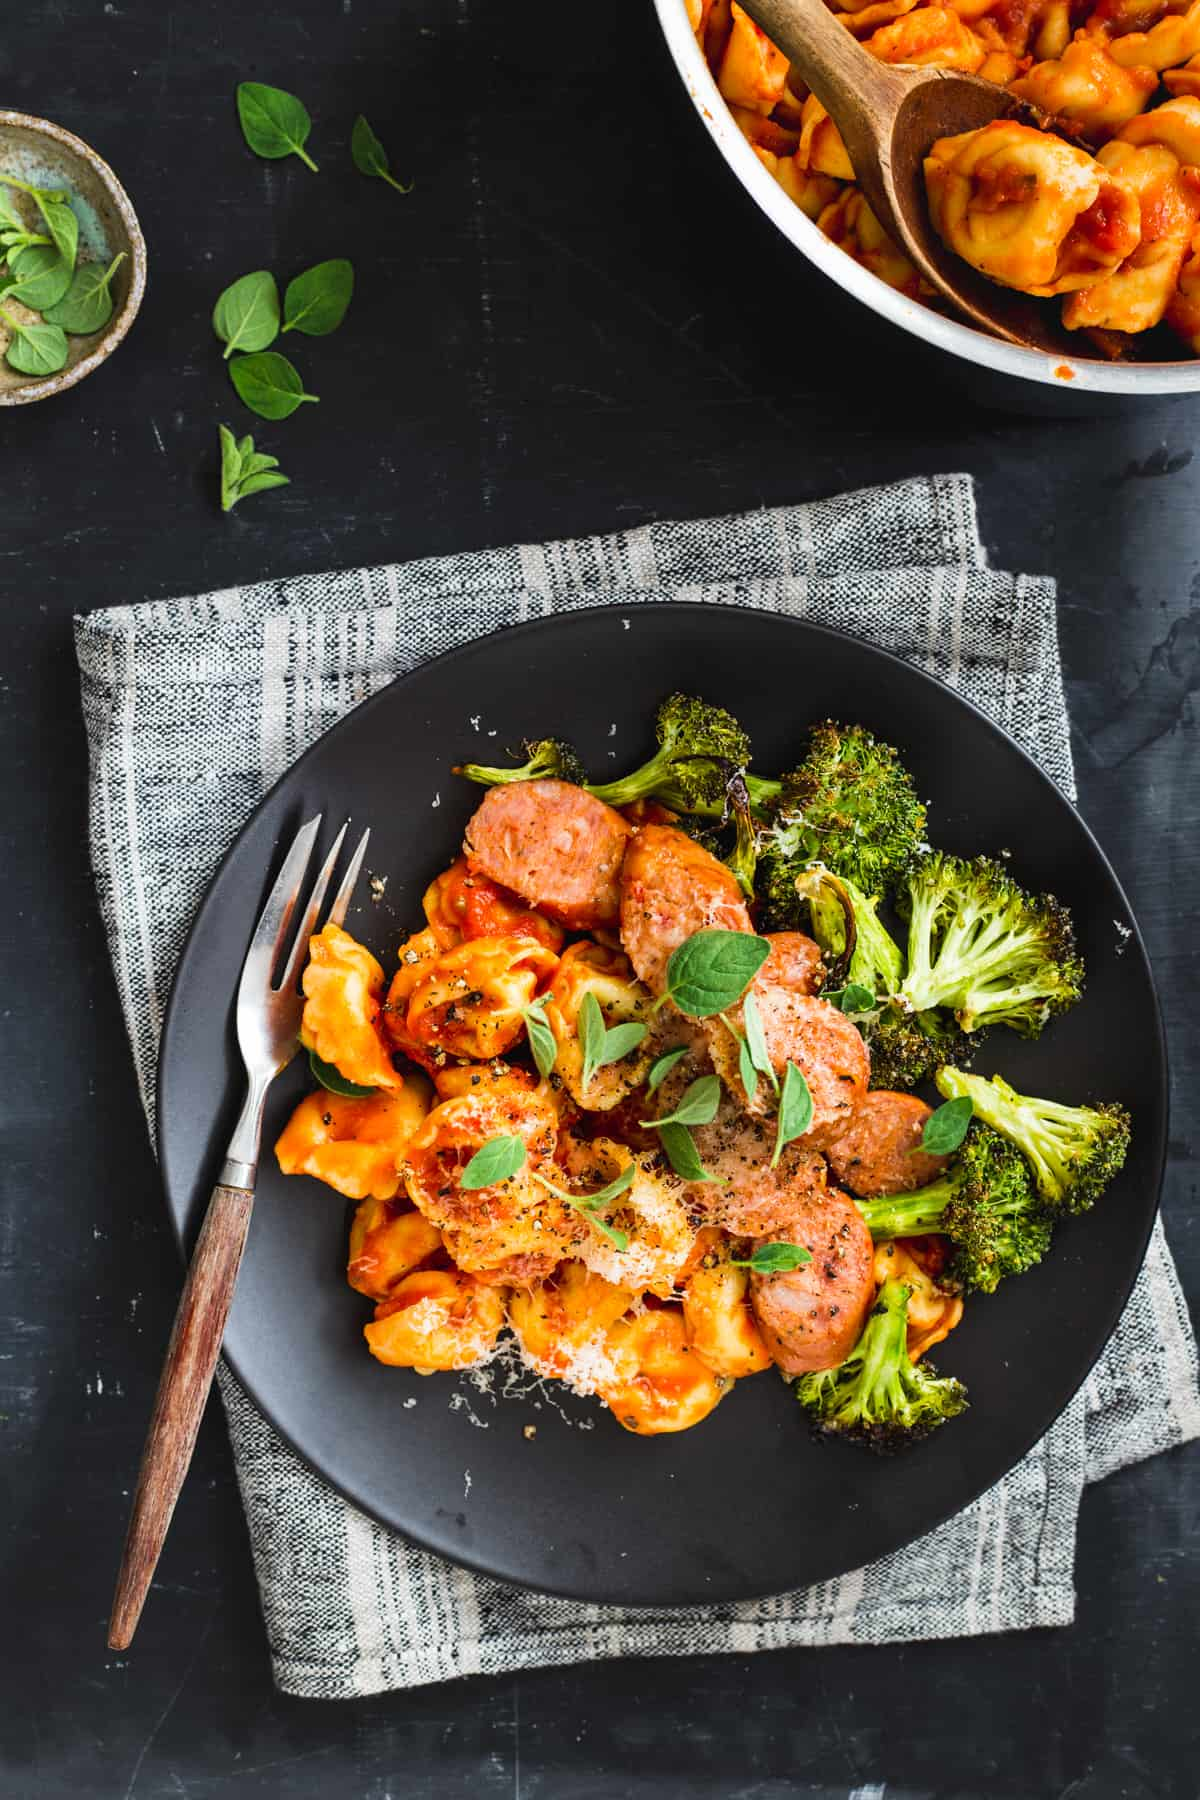 Cheese Tortellini with Roasted Broccoli and Sausage